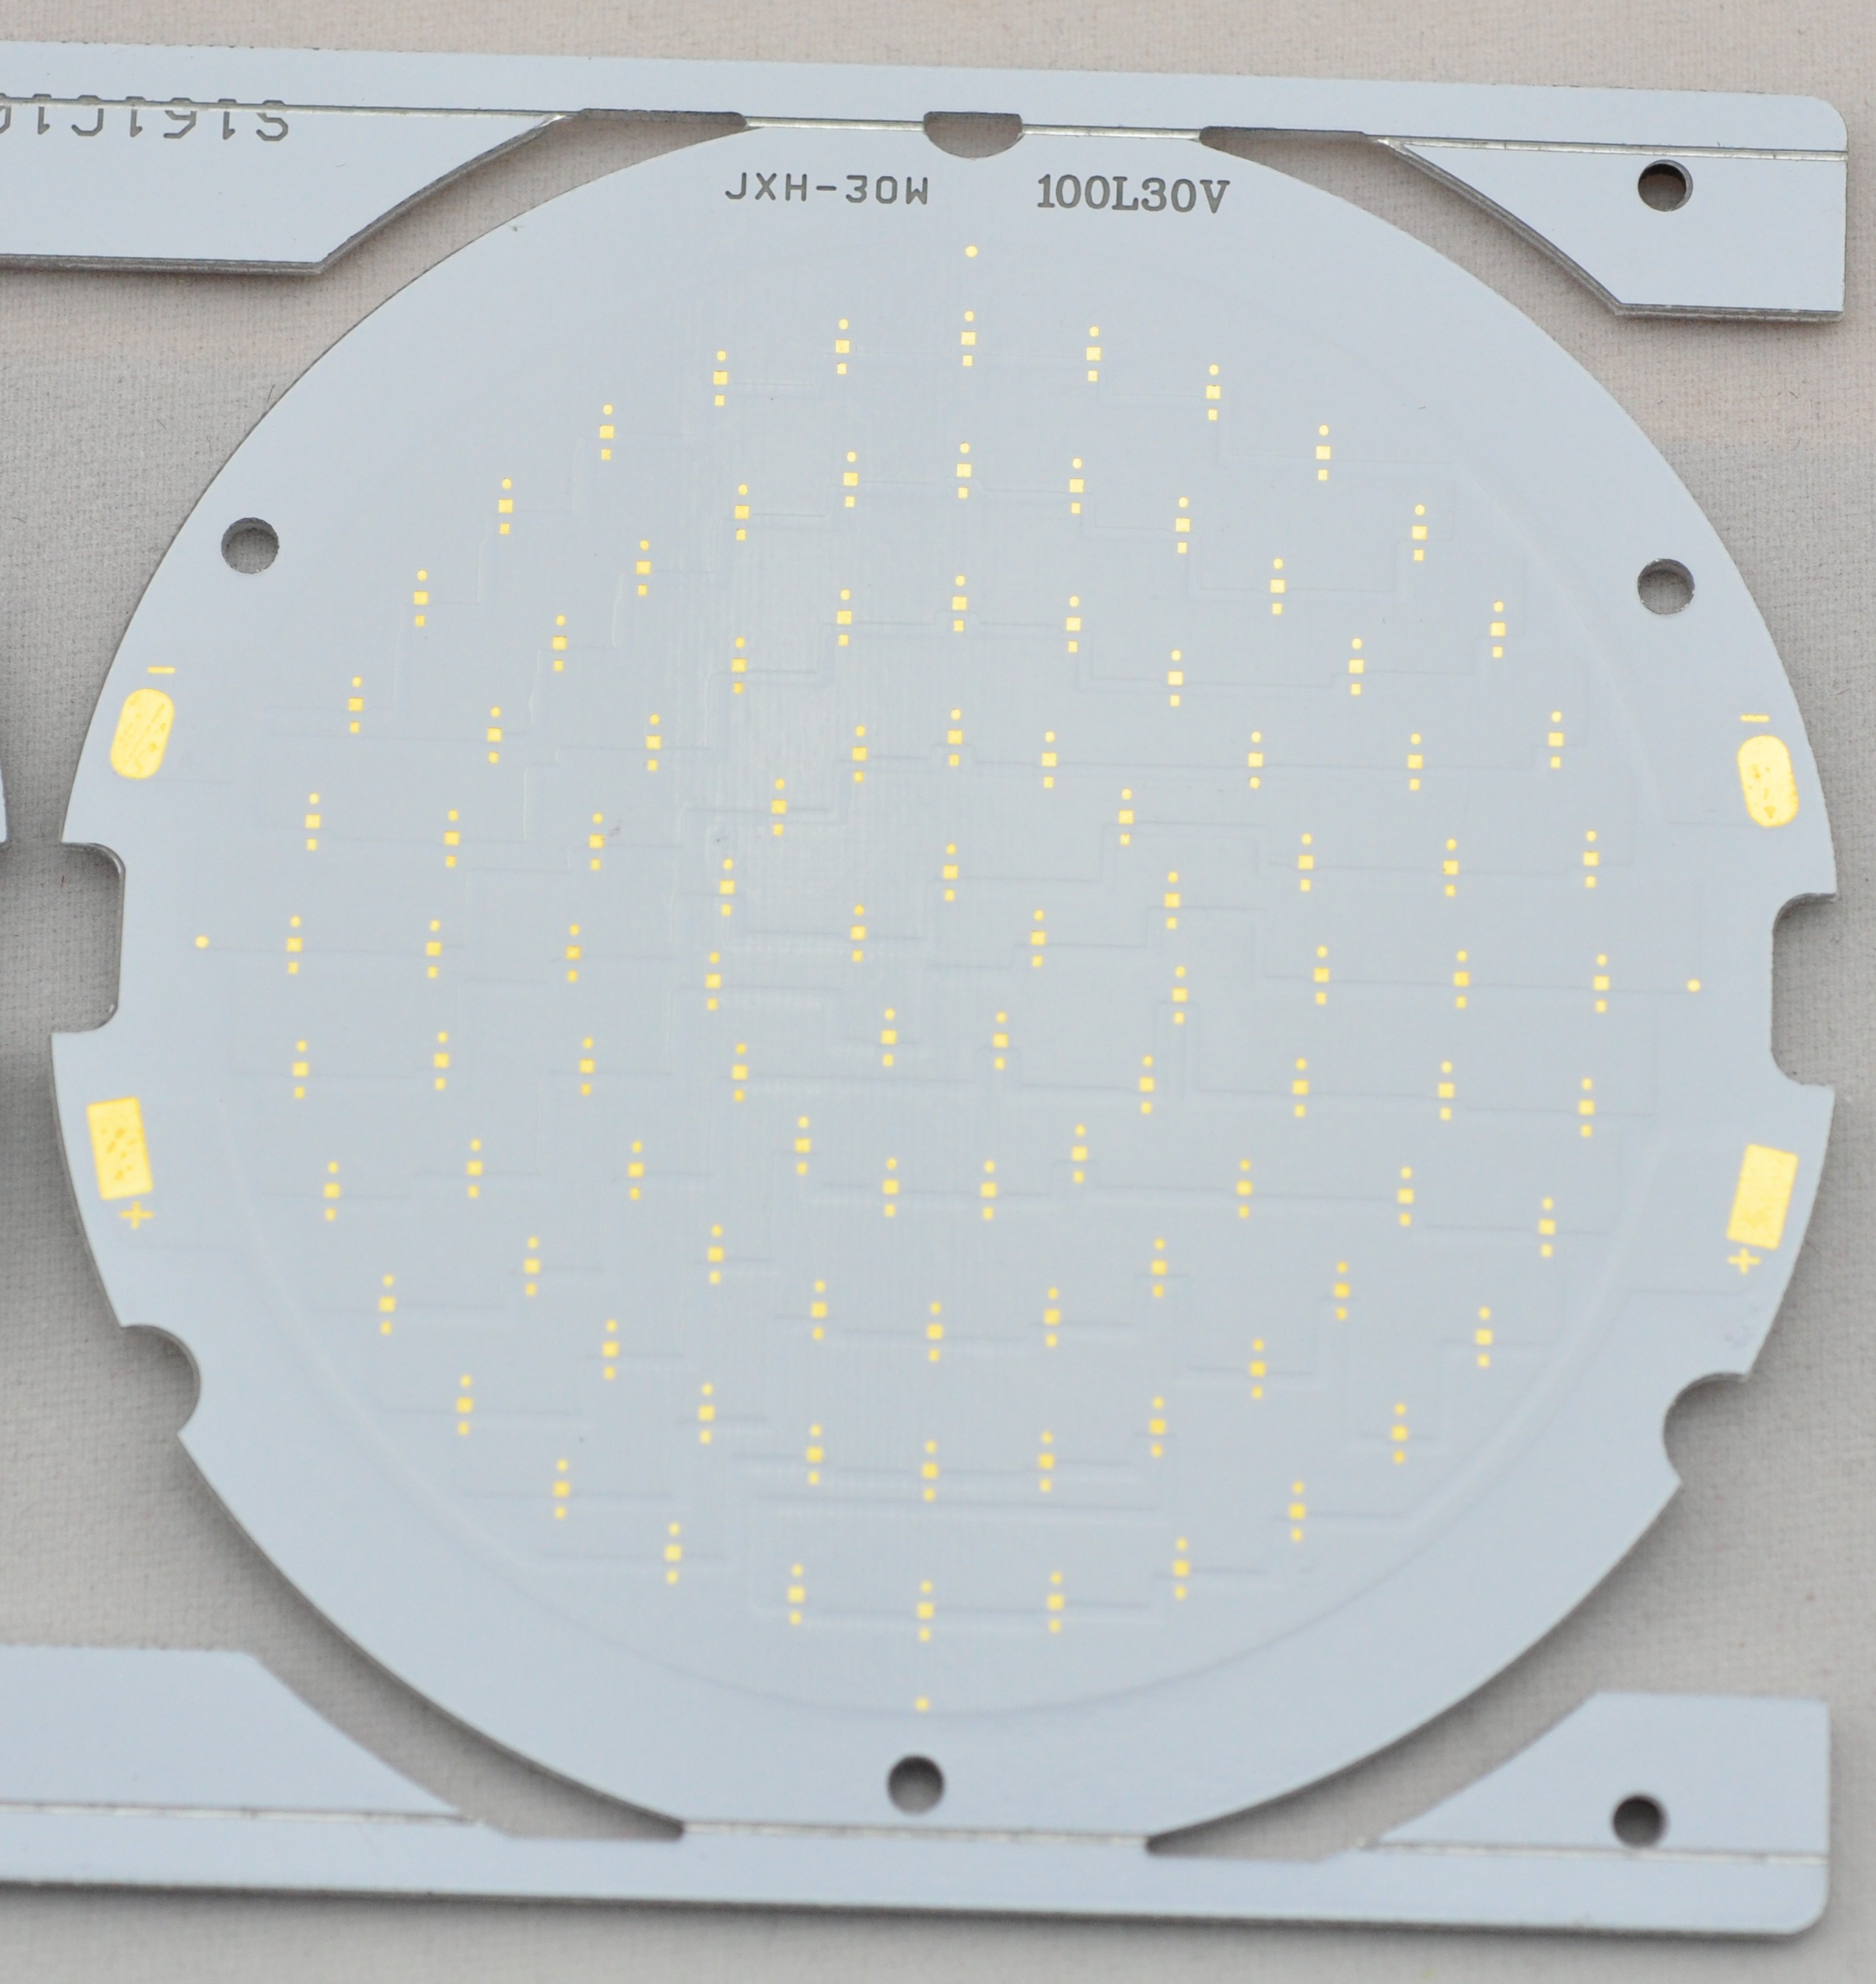 Dcb Ceramic Pcb Design Guide Ceraamic Gesign Circuit Boards Led Metal Core Pcbs Mcpcbs Mc Light Please Contact Us For More Information About The Cob Mcpcb